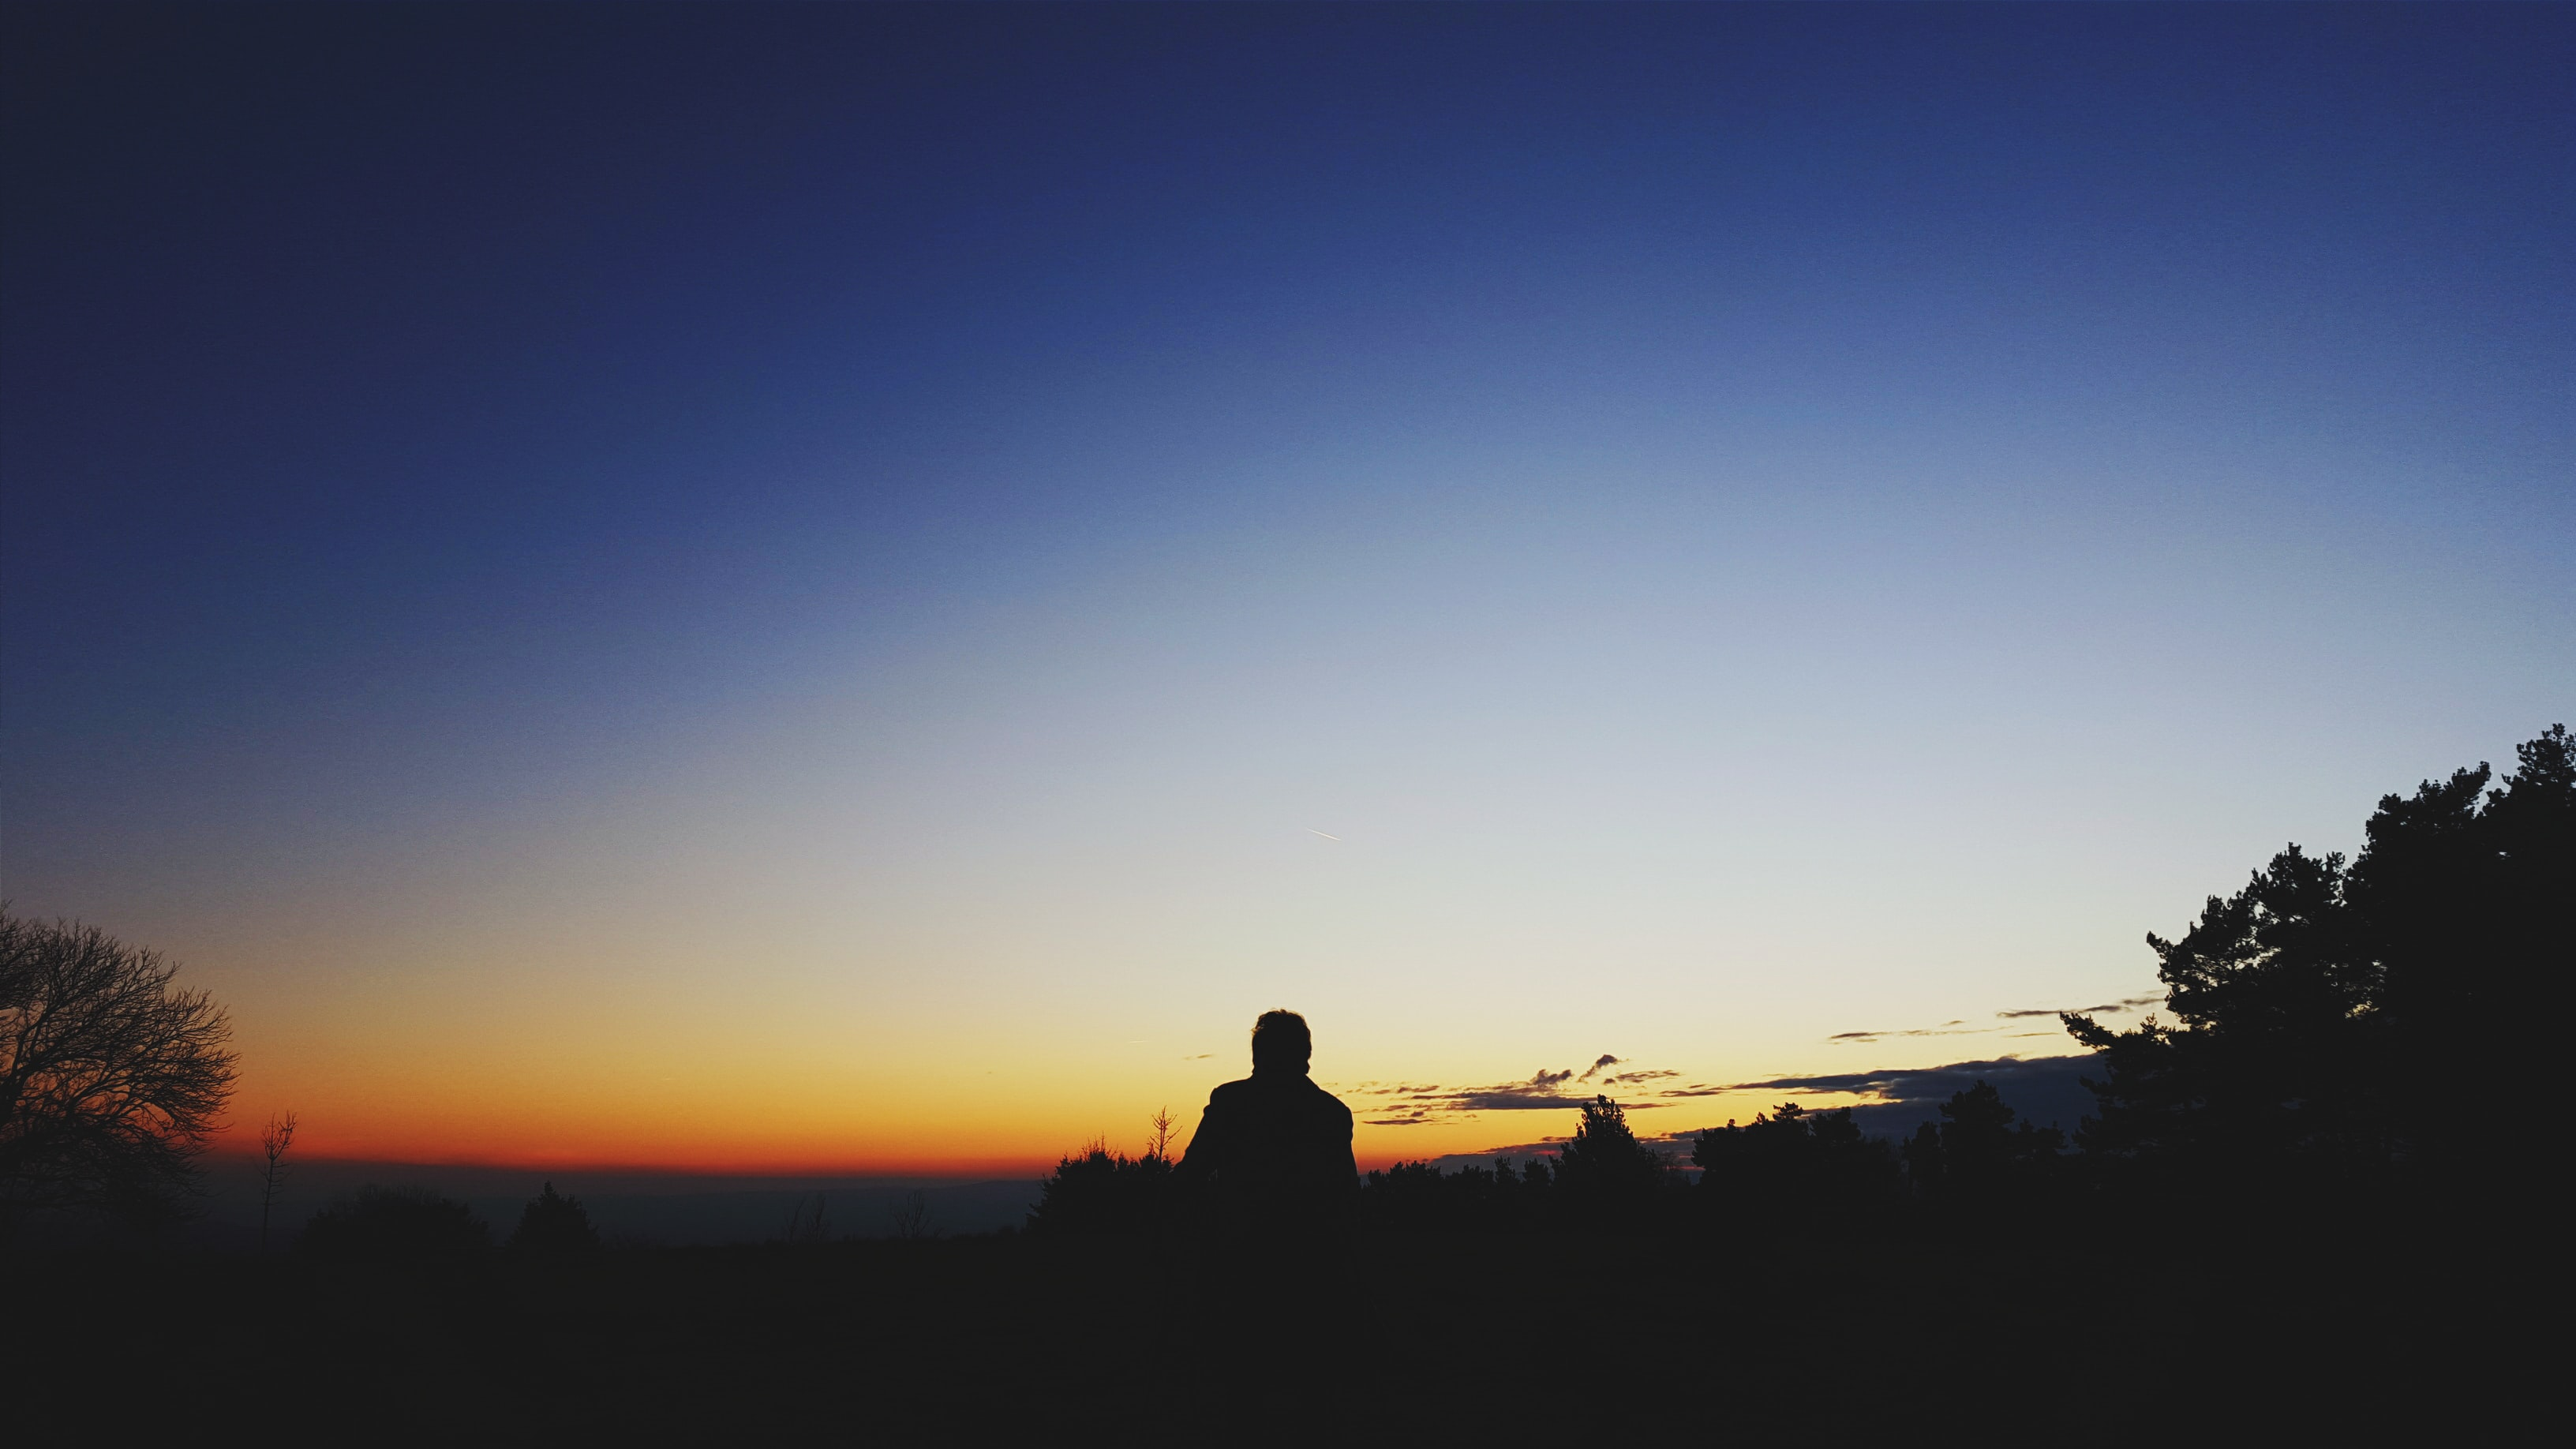 silhouette photo of man standing near trees at golden hour